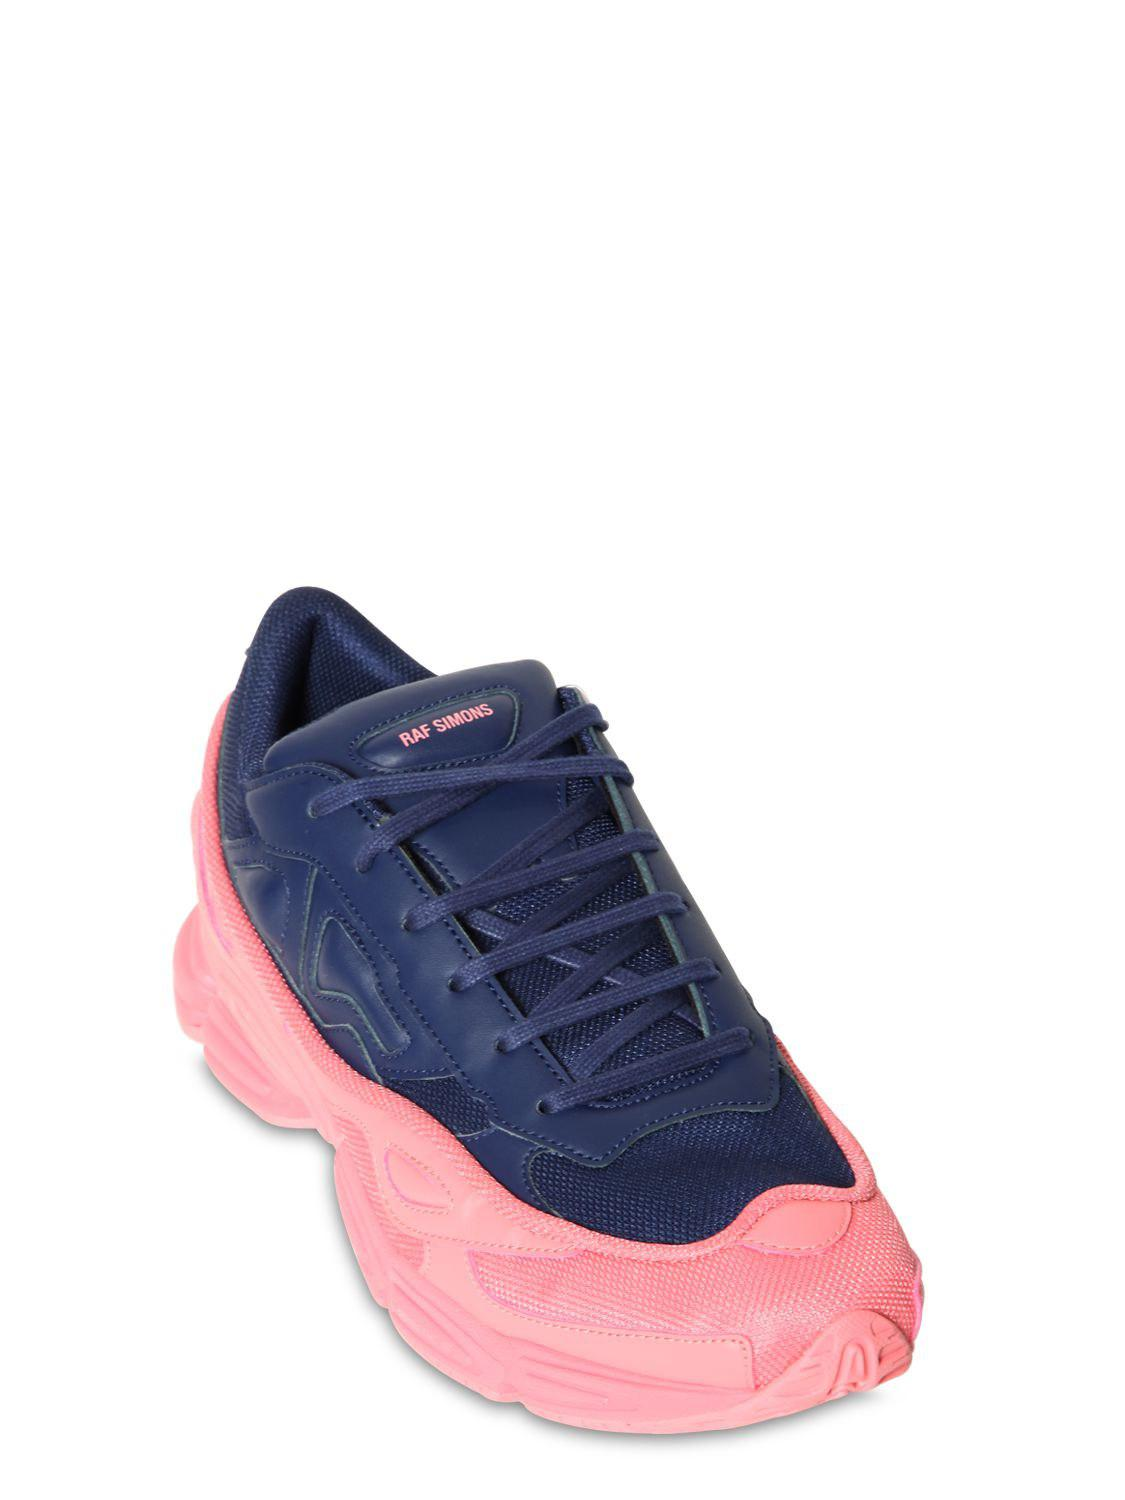 645c0418ef40 Lyst - adidas By Raf Simons Rs Ozweego Iii Two Tone Sneakers in Blue for Men